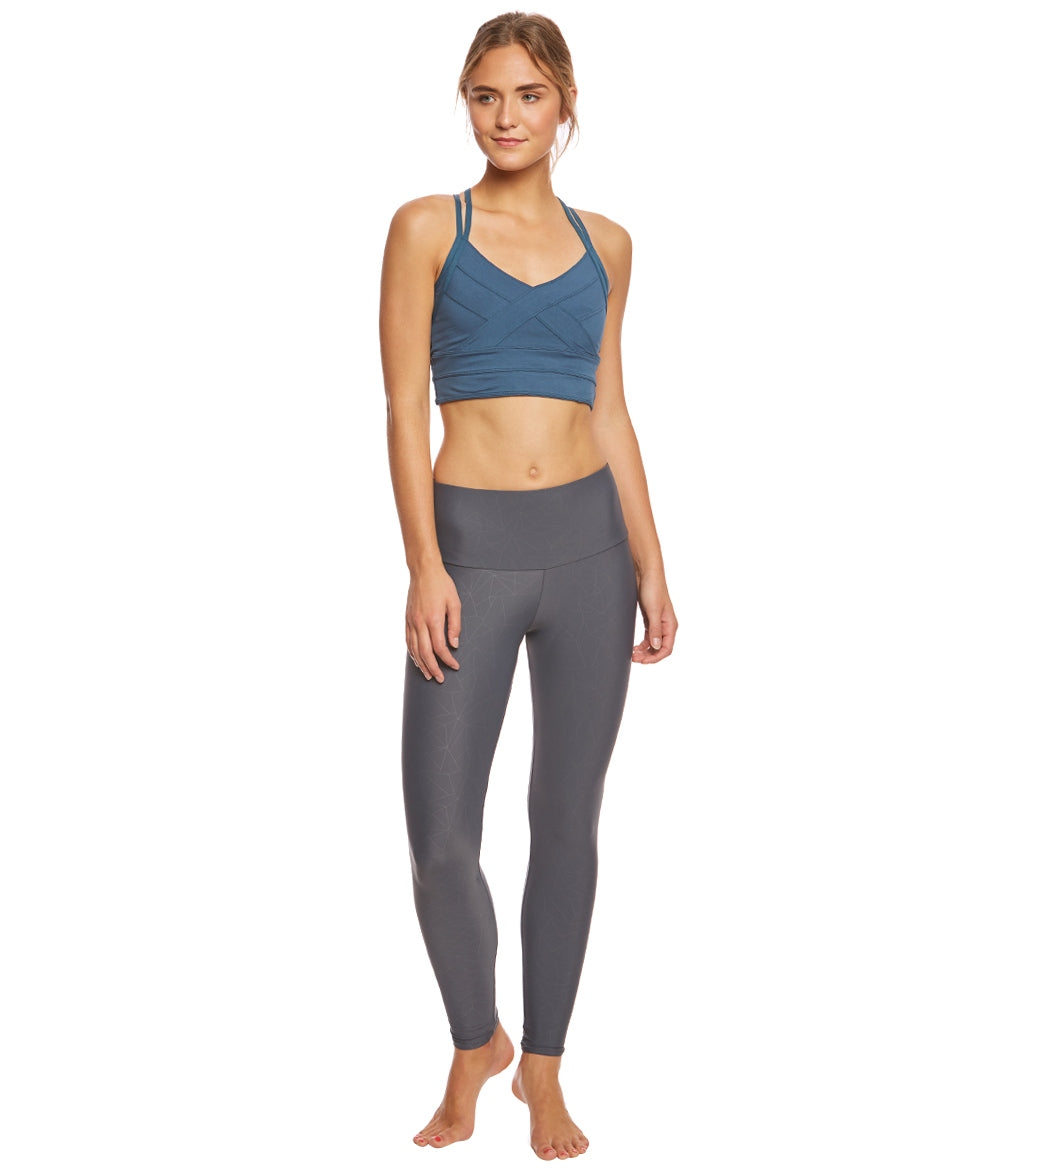 028d4217638e8 Balance Collection Ada Yoga Sports Bra at YogaOutlet.com